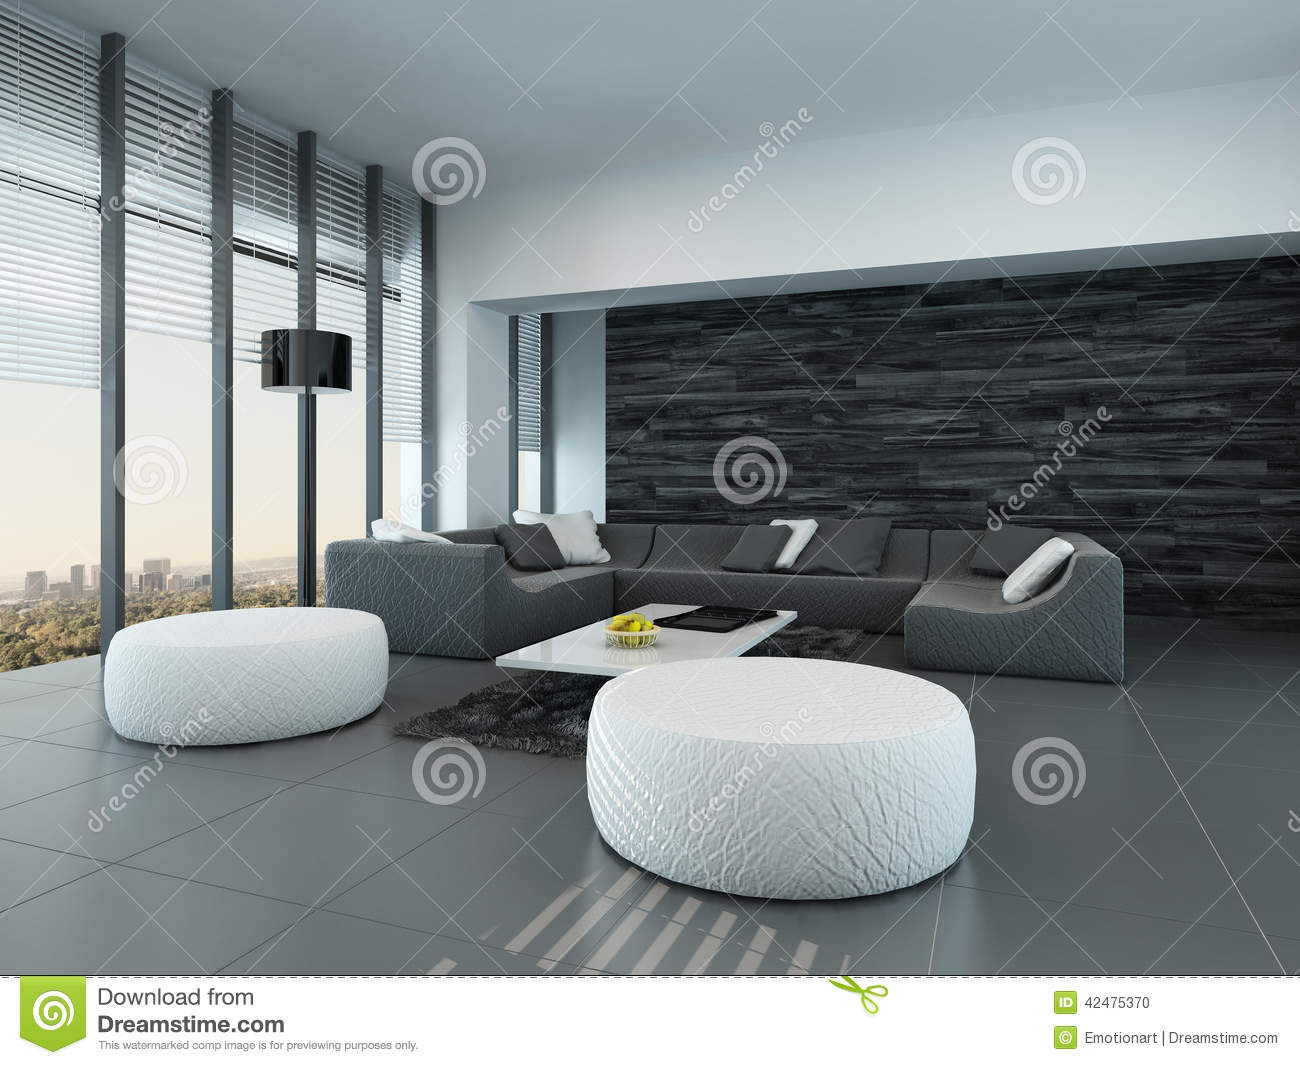 Int rieur d 39 un salon gris et blanc moderne illustration stock image 42475370 - Salon moderne blanc ...